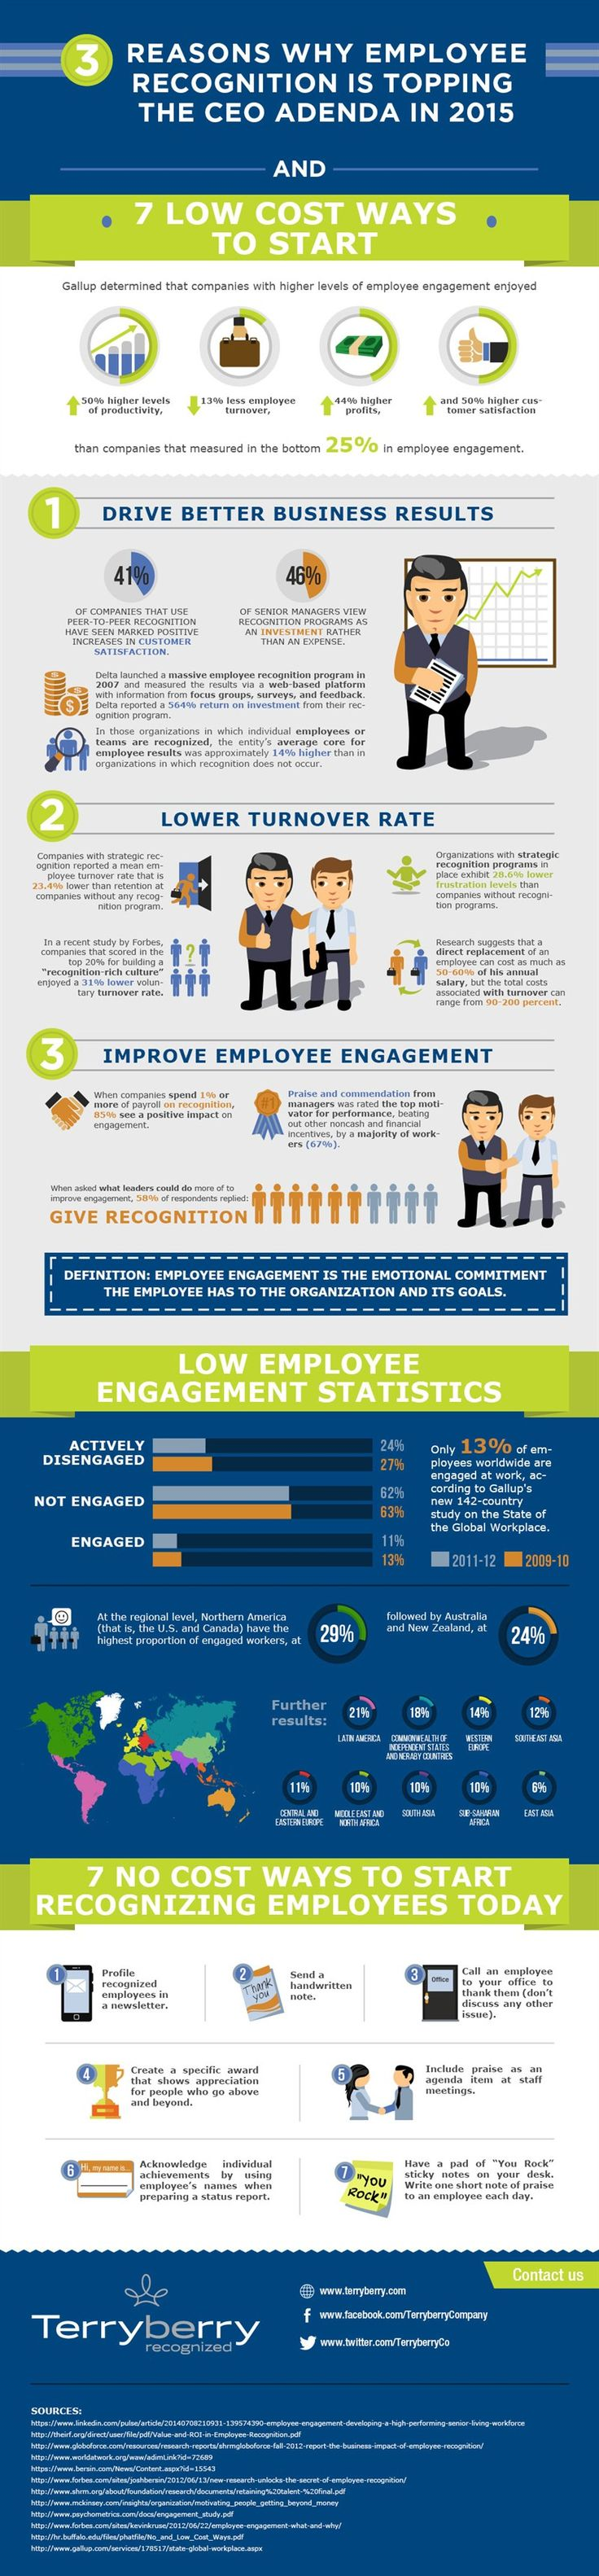 Why Employee Recognition Programs Are Important                                                                                                                                                      More